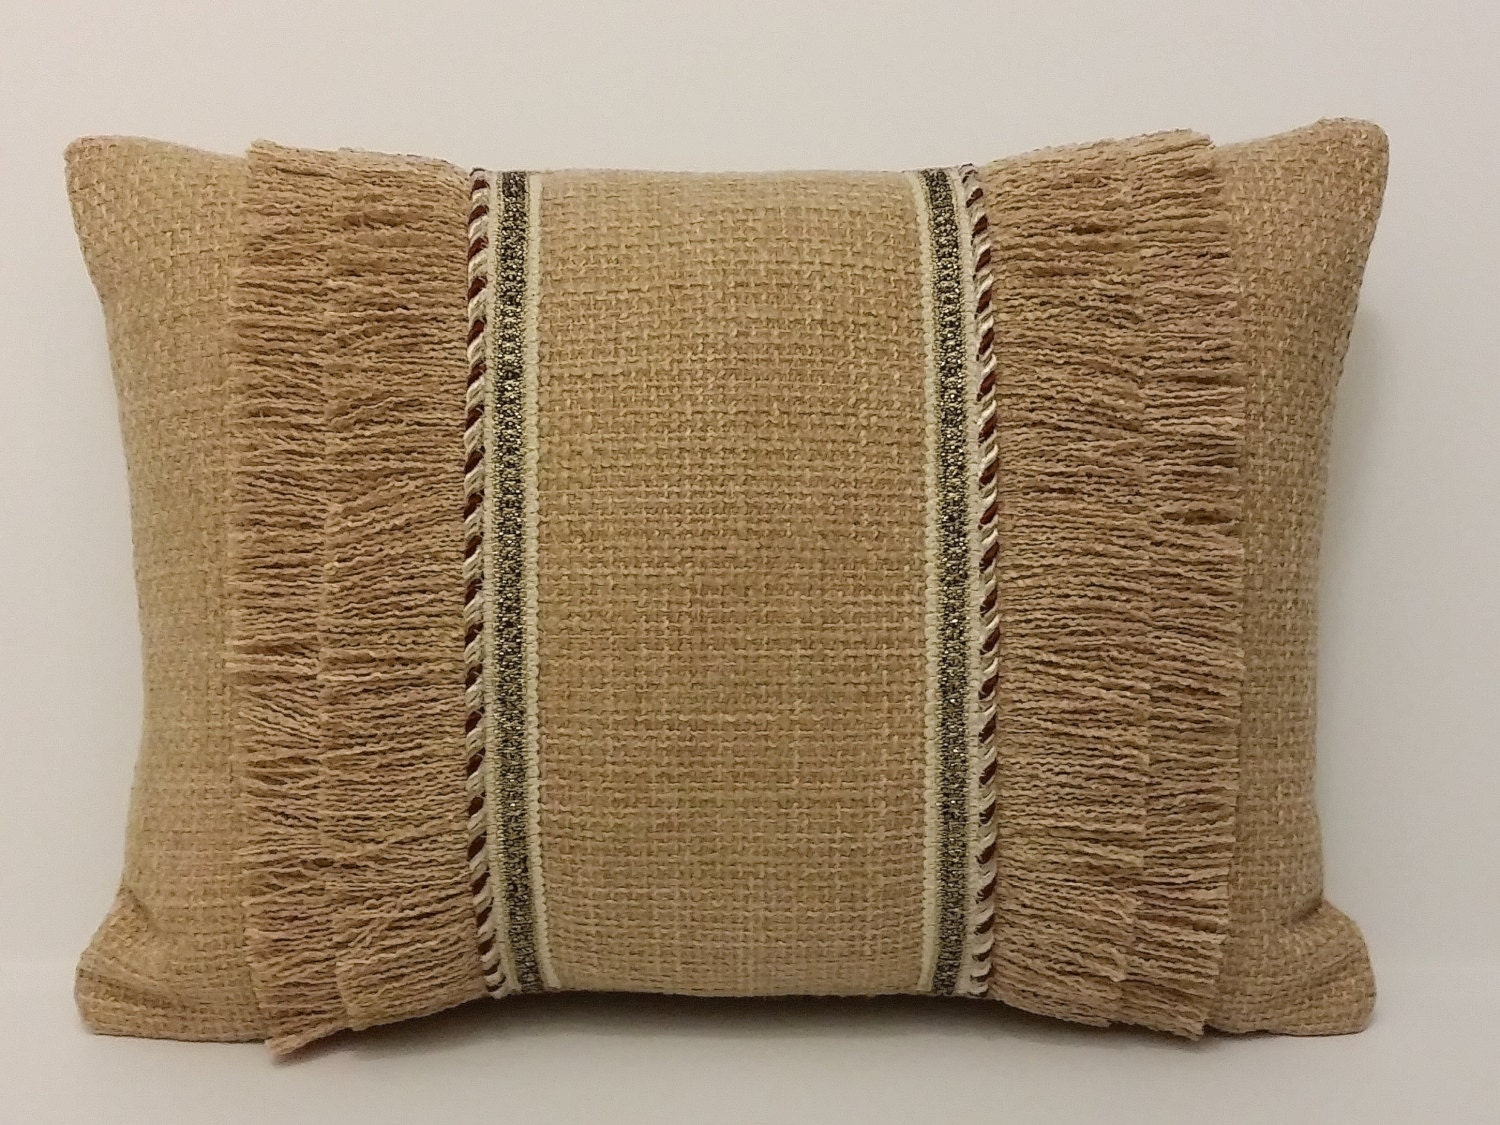 Decorative Throw Pillows With Fringe : Camel Throw Pillow Camel Fringe Pillow Camel by OvationsInStyle